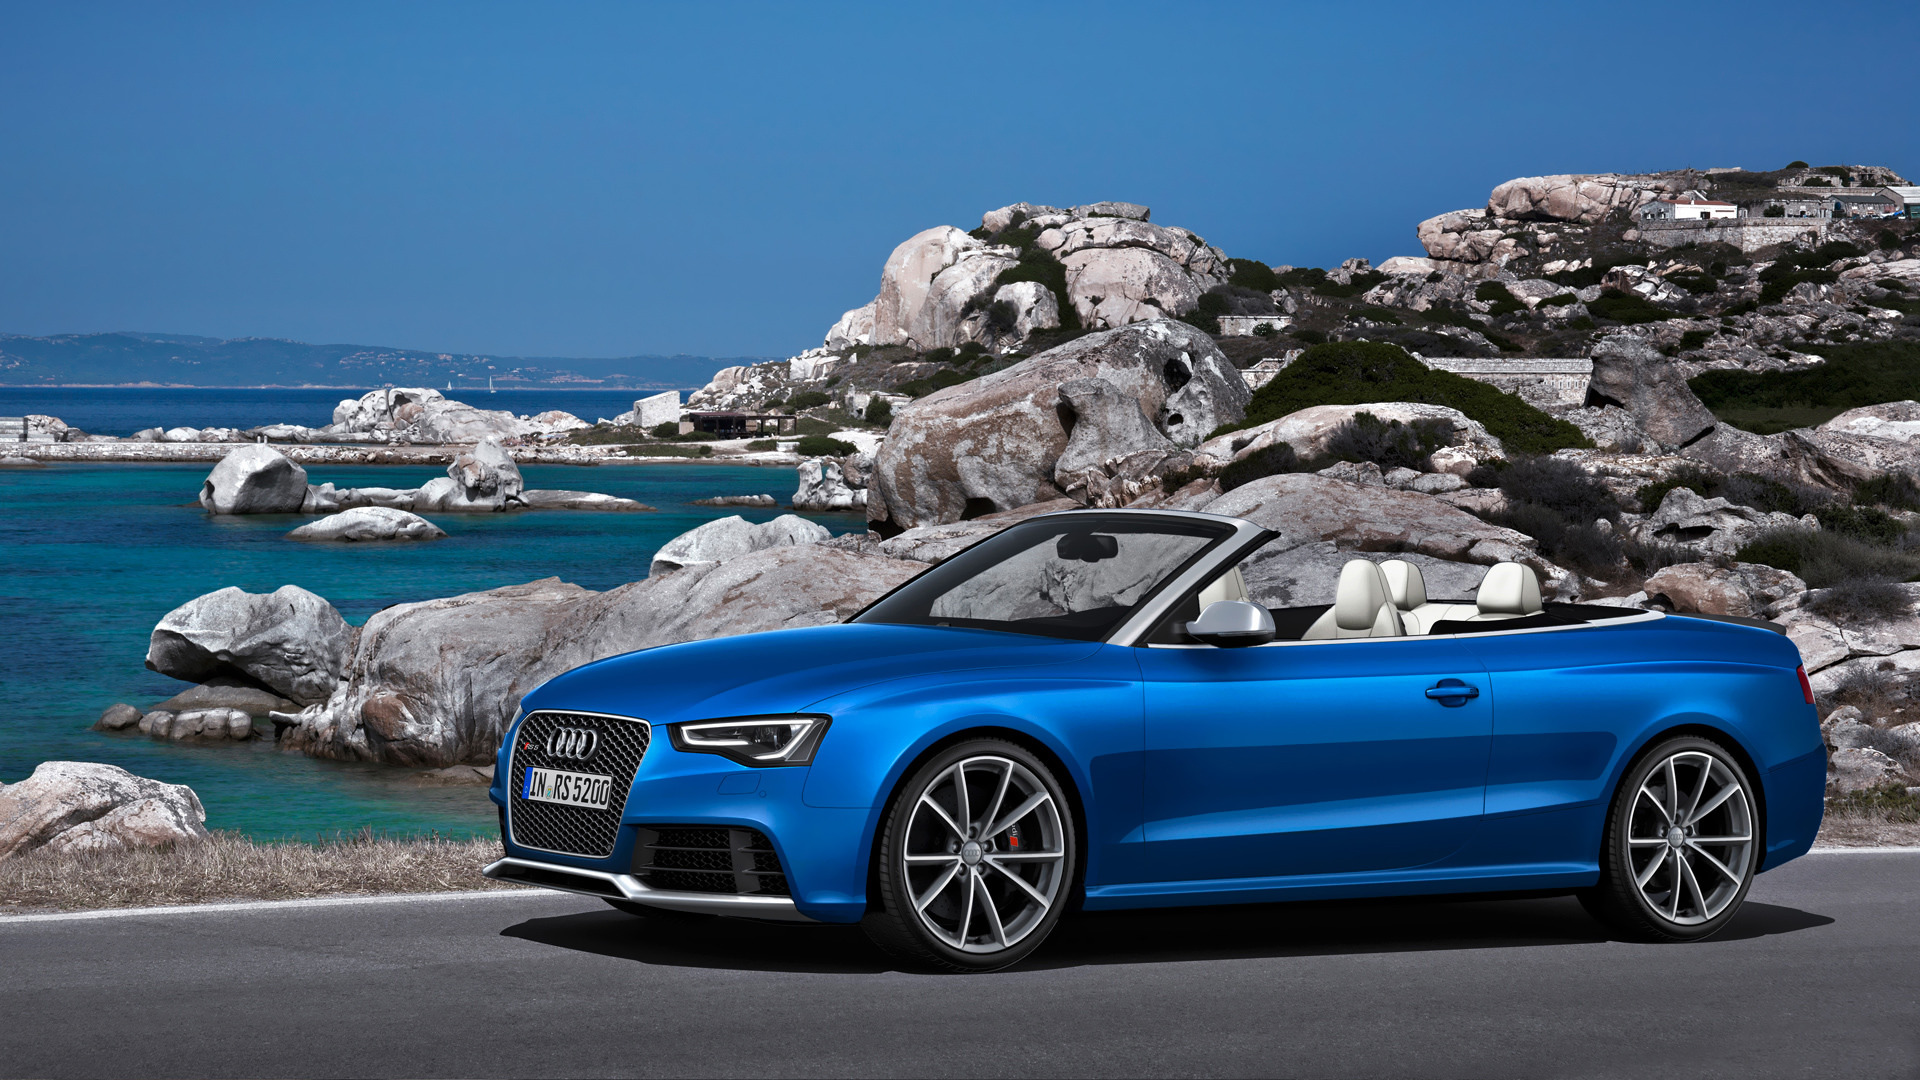 audi rs5 cabrio photos 11 on better parts ltd. Black Bedroom Furniture Sets. Home Design Ideas